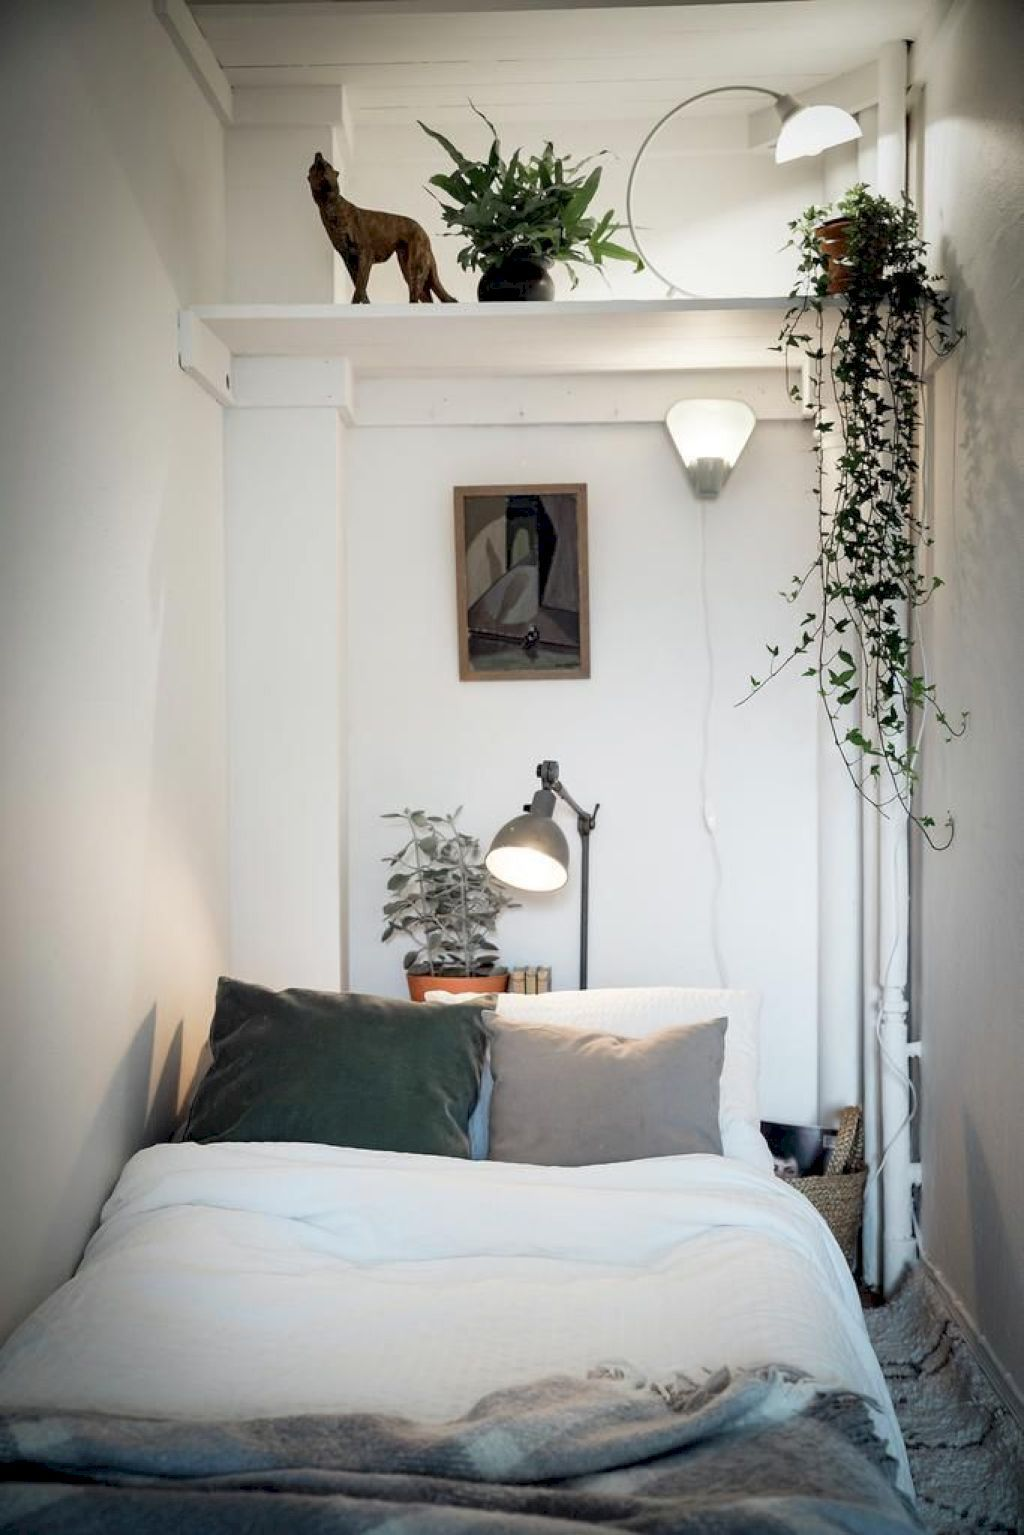 cozy tiny bedroom remodel ideas 68 in 2020 small on unique contemporary bedroom design ideas for more inspiration id=88475